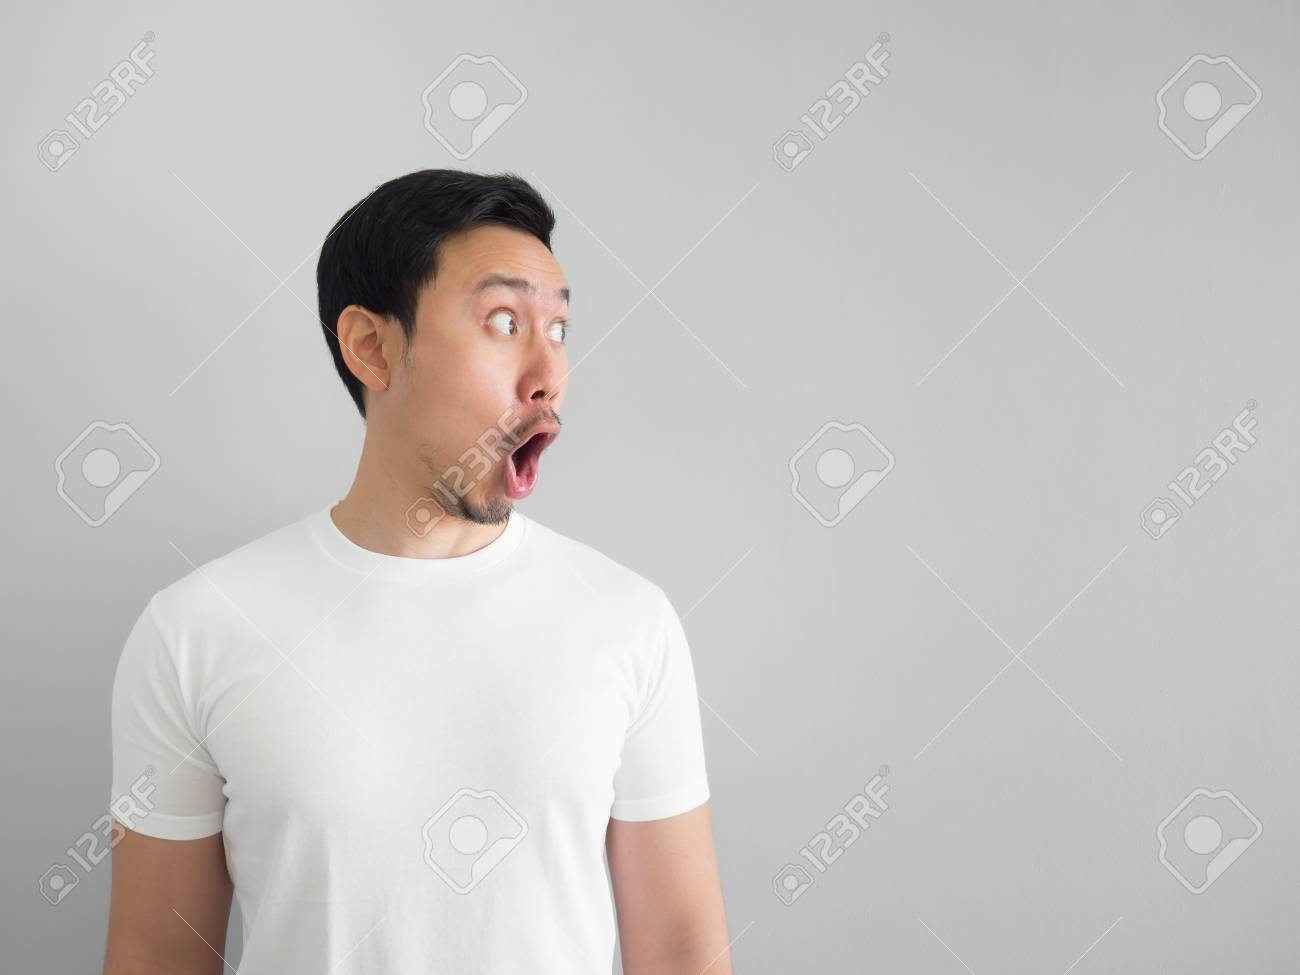 Shocked Face Of Asian Man In White Shirt On Grey Background Stock 1300x975